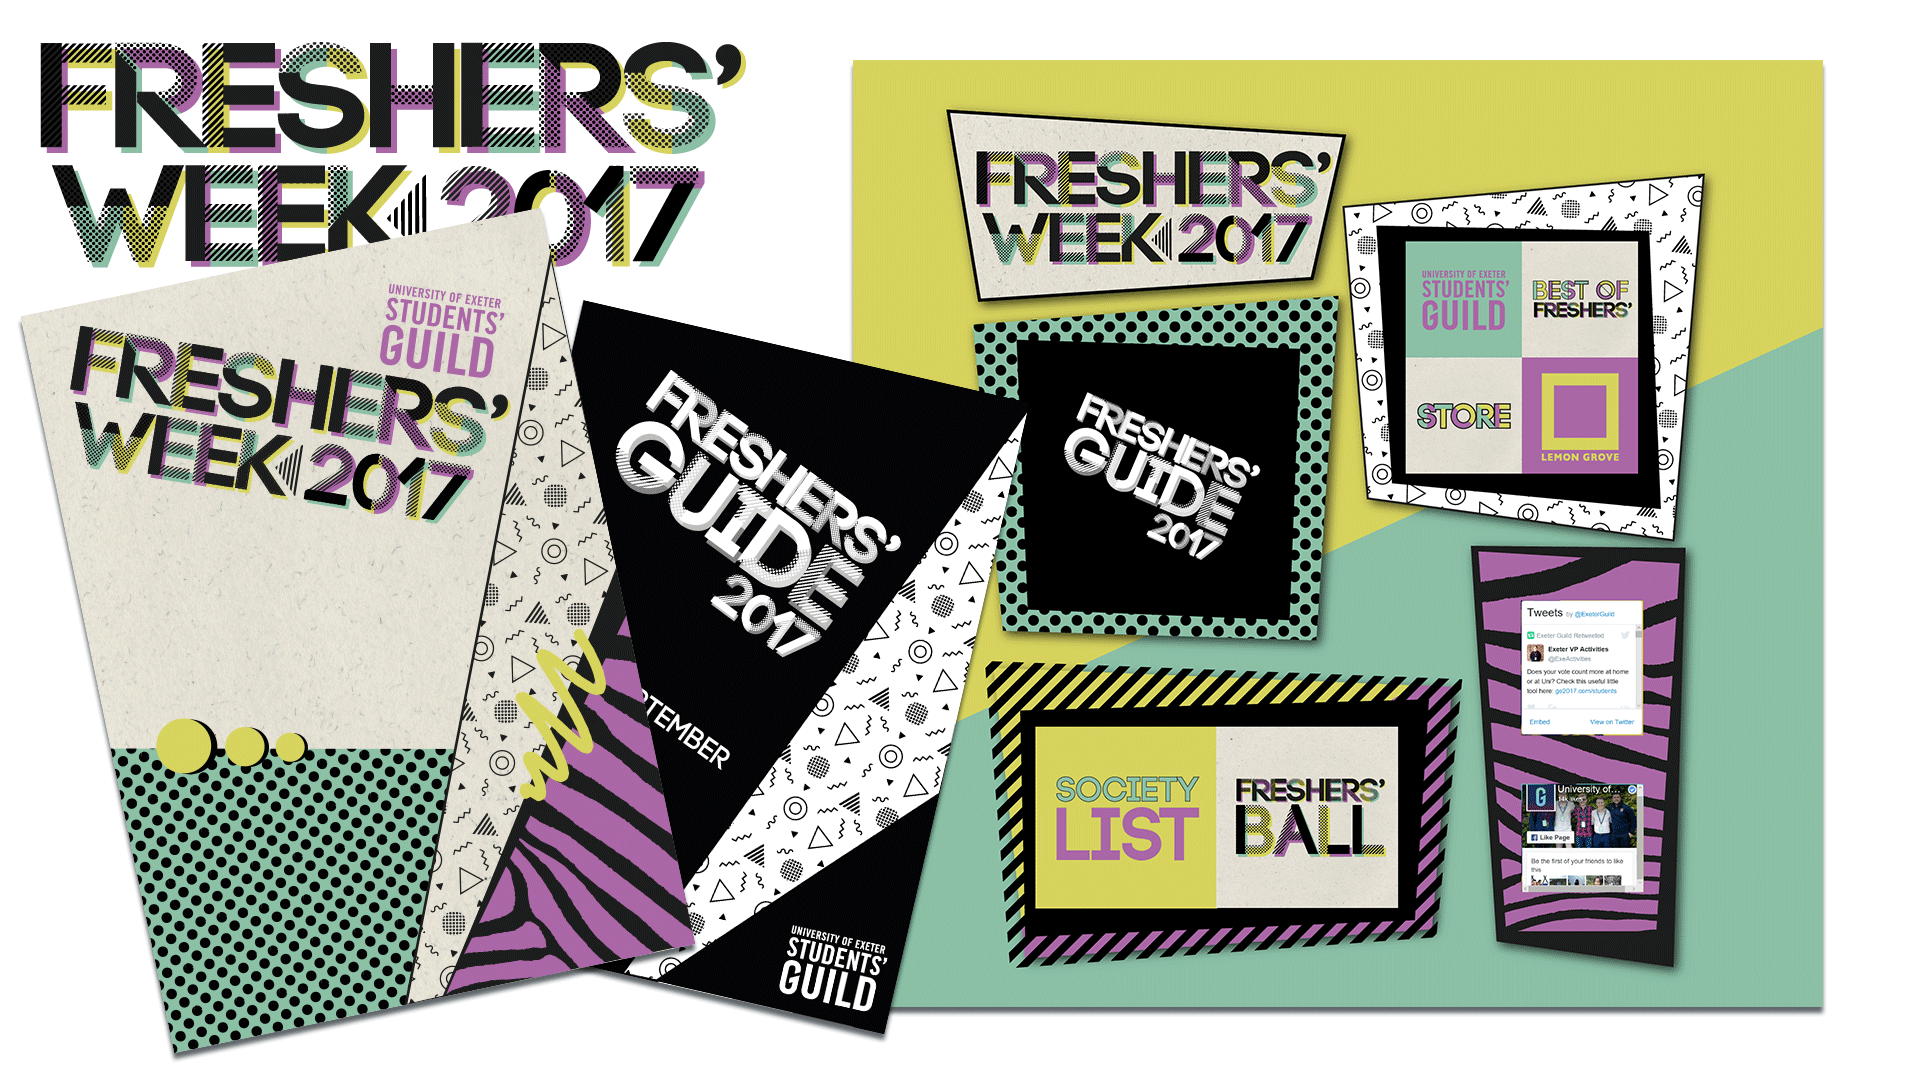 University of Exeter Freshers' Week